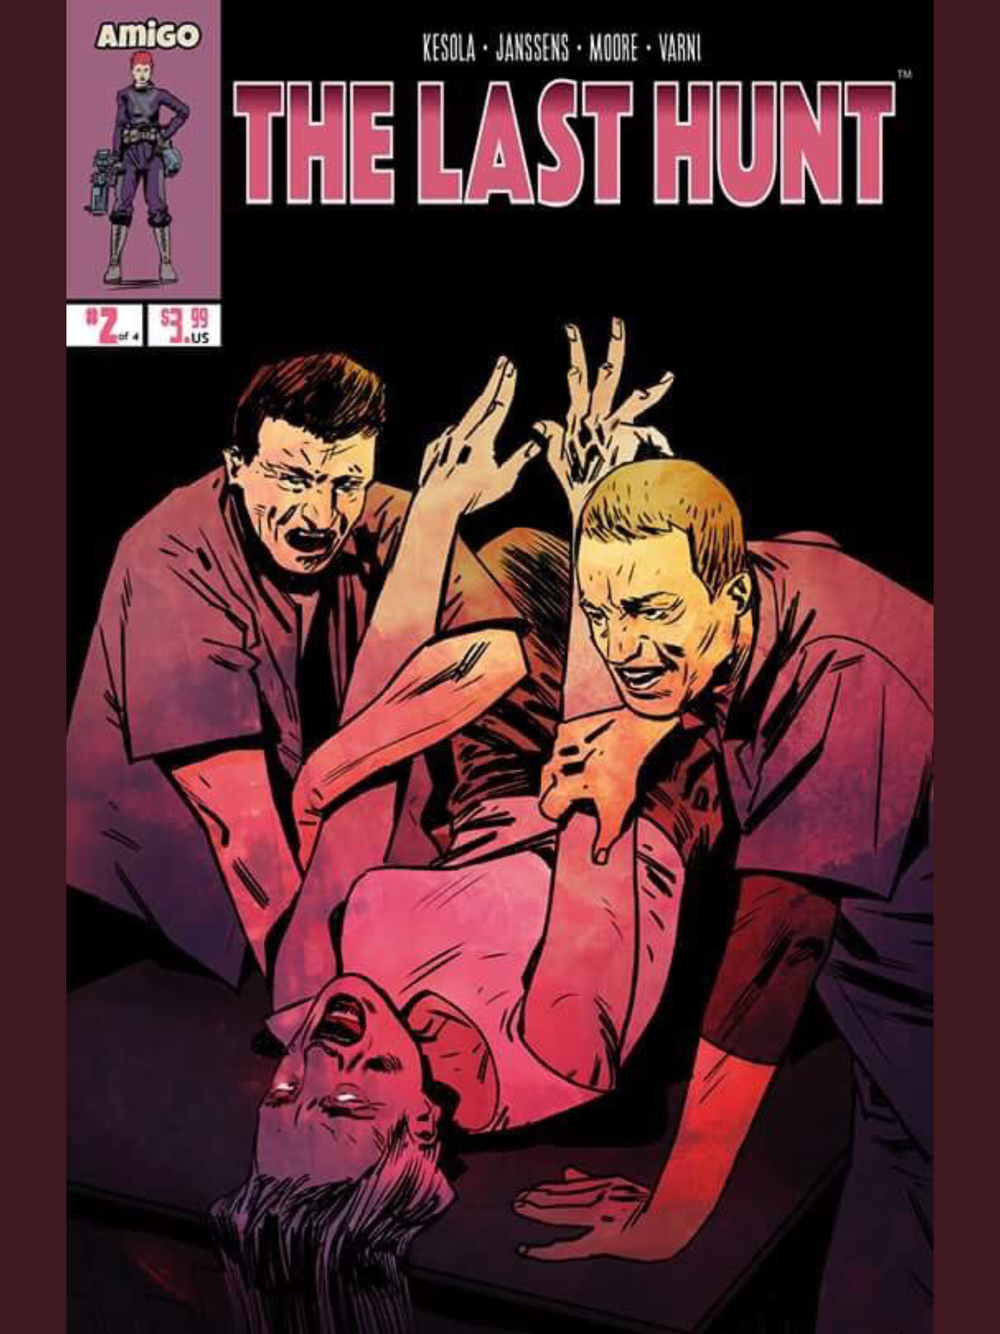 Above: The Last Hunt from writer Hannu Kesola. It's not the current issue, but I just love the image of the cover.